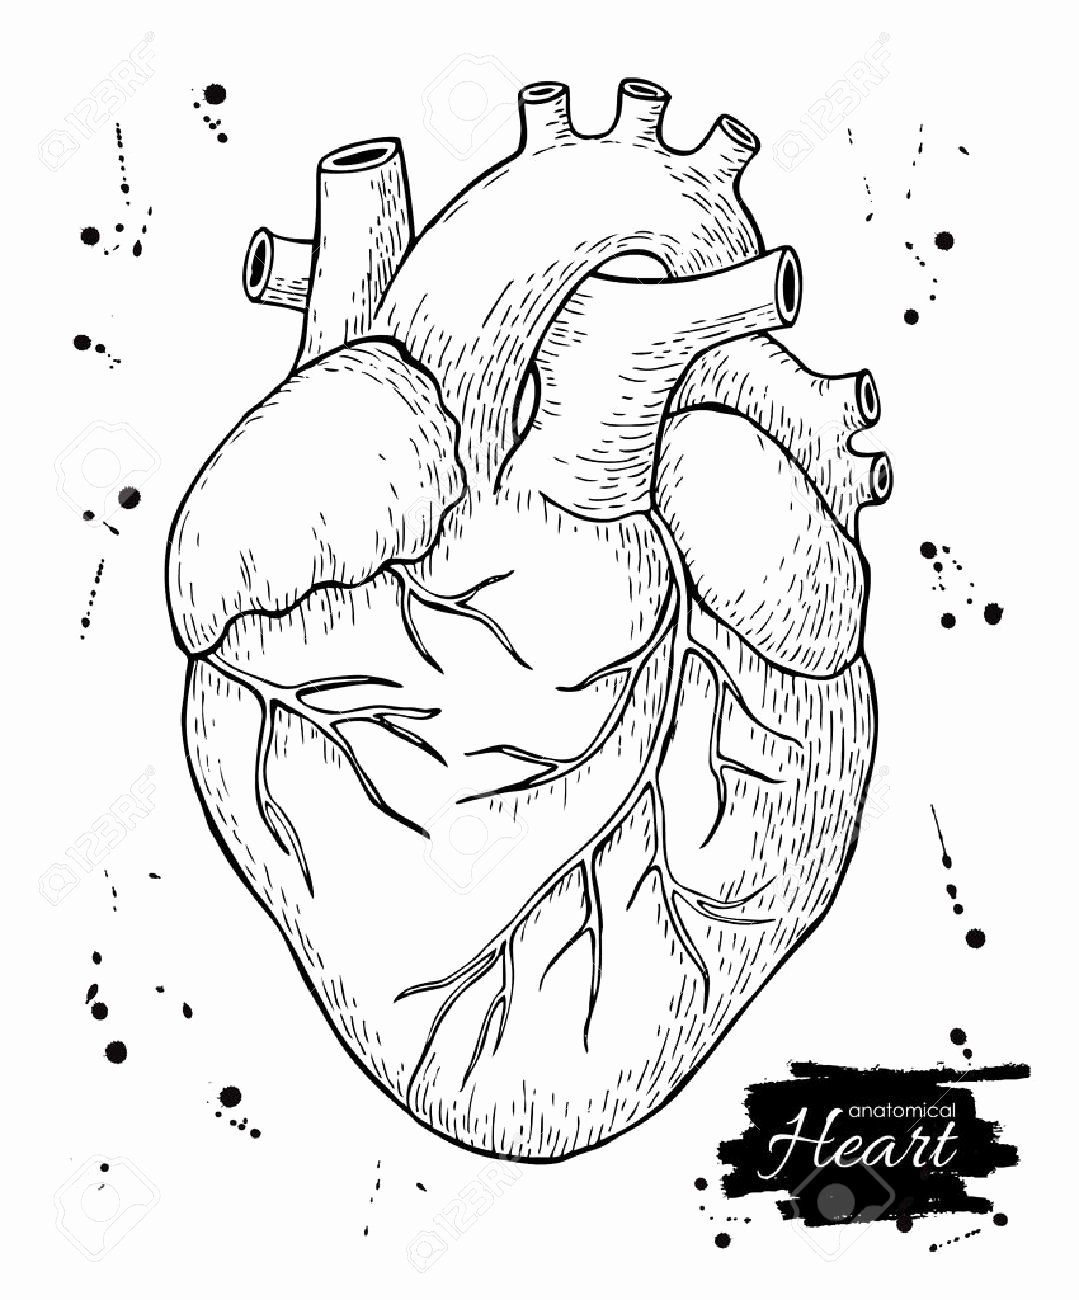 Heart Anatomy Coloring Worksheet Inspirational Heart